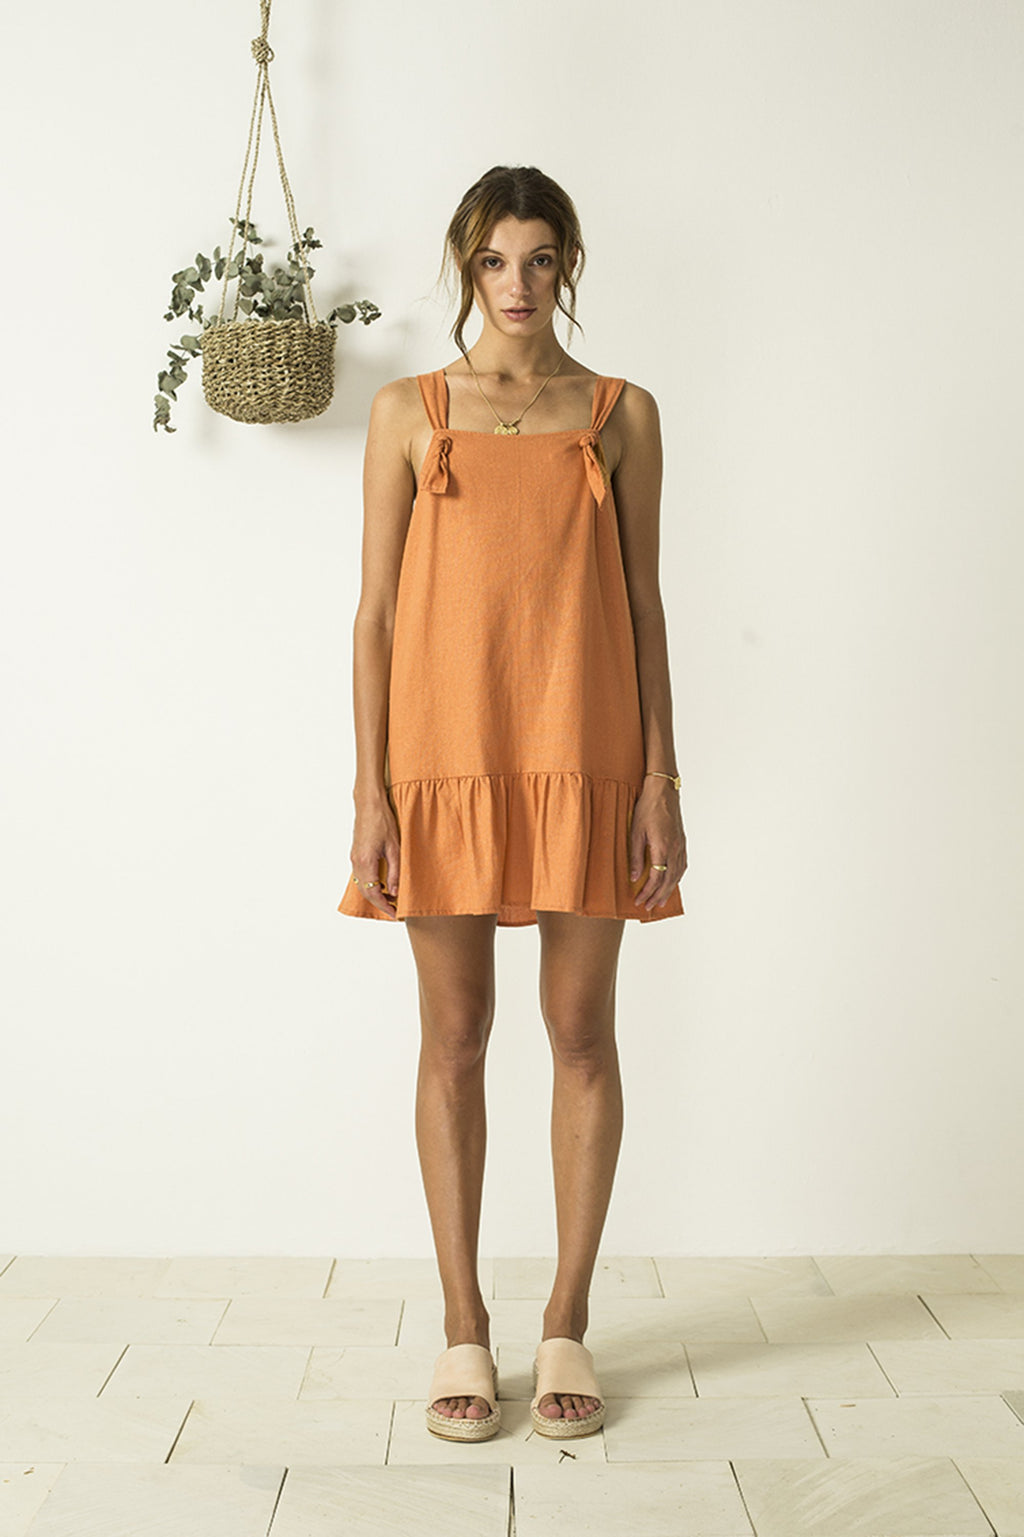 BIRD AND KITE - Lilou Pinafore Dress online at PAYA boutique